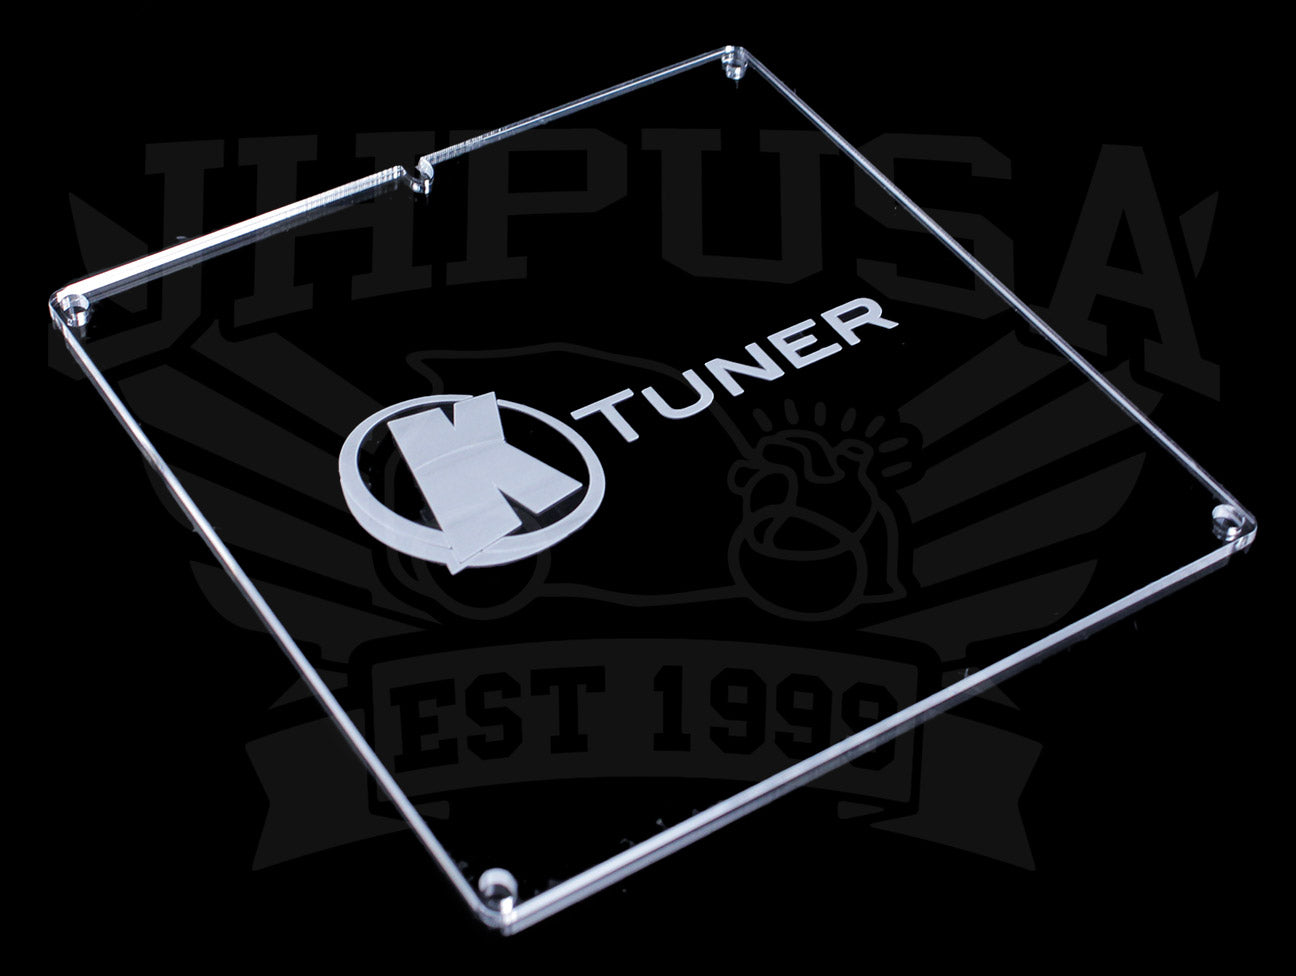 KTuner ECU Cover - K-series